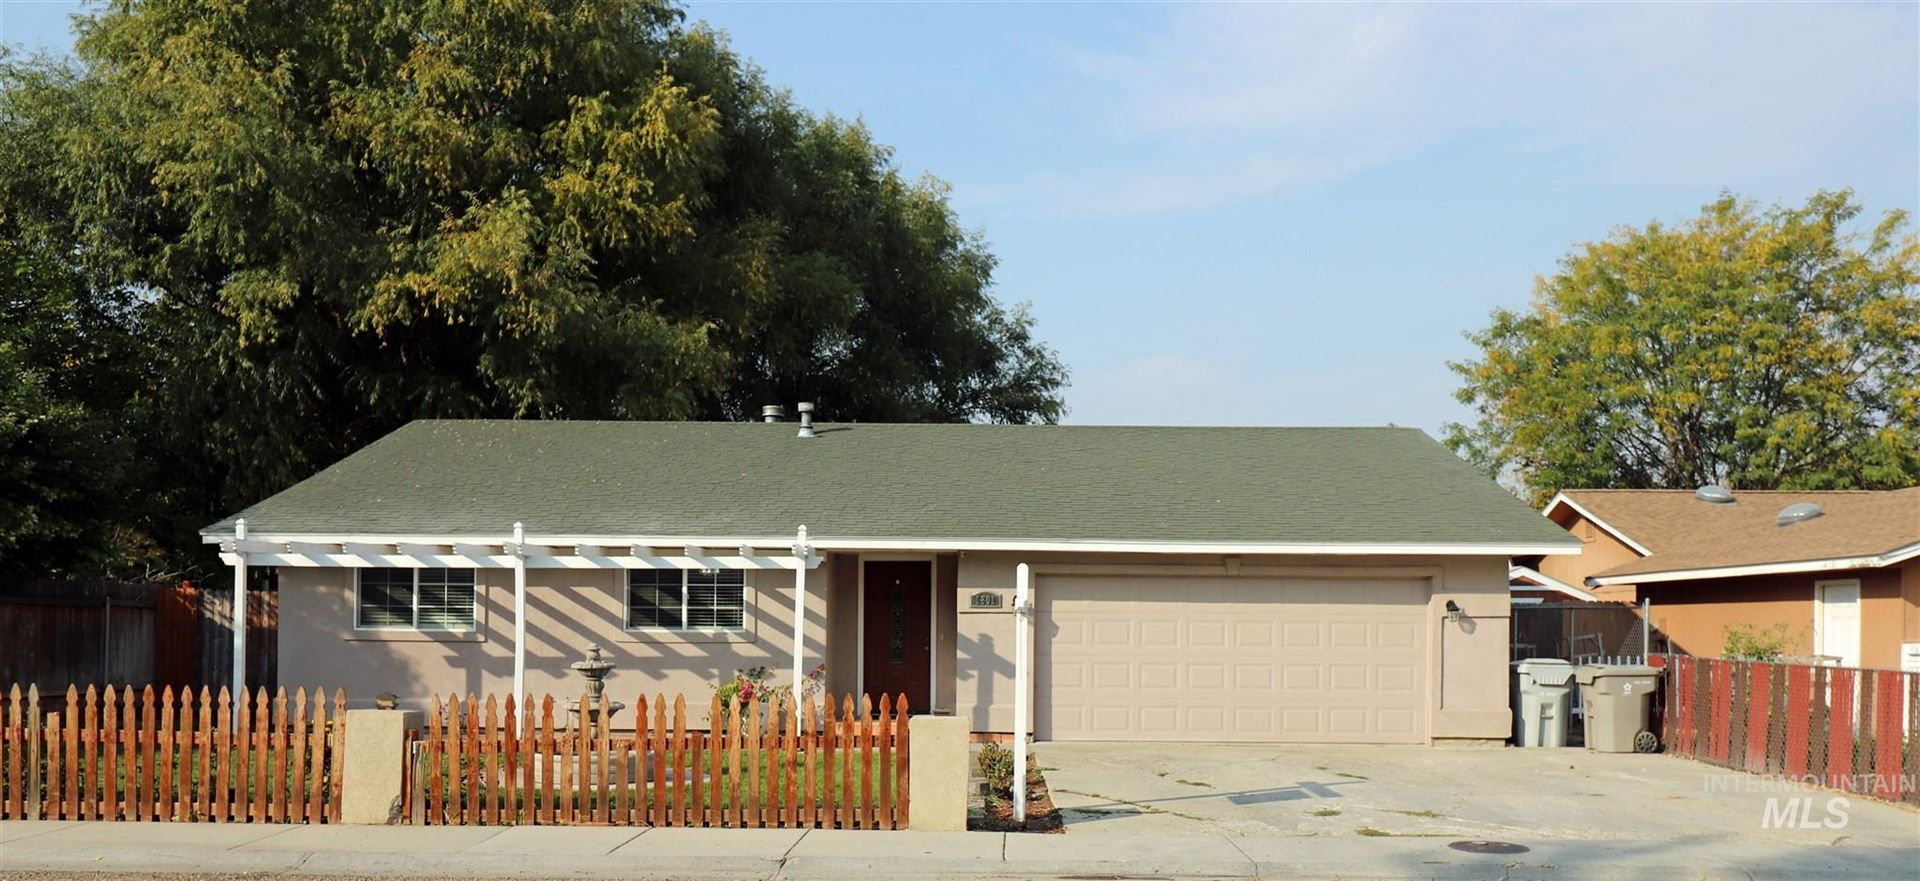 1801 Cherry St., Caldwell, ID 83605 - MLS#: 98783646